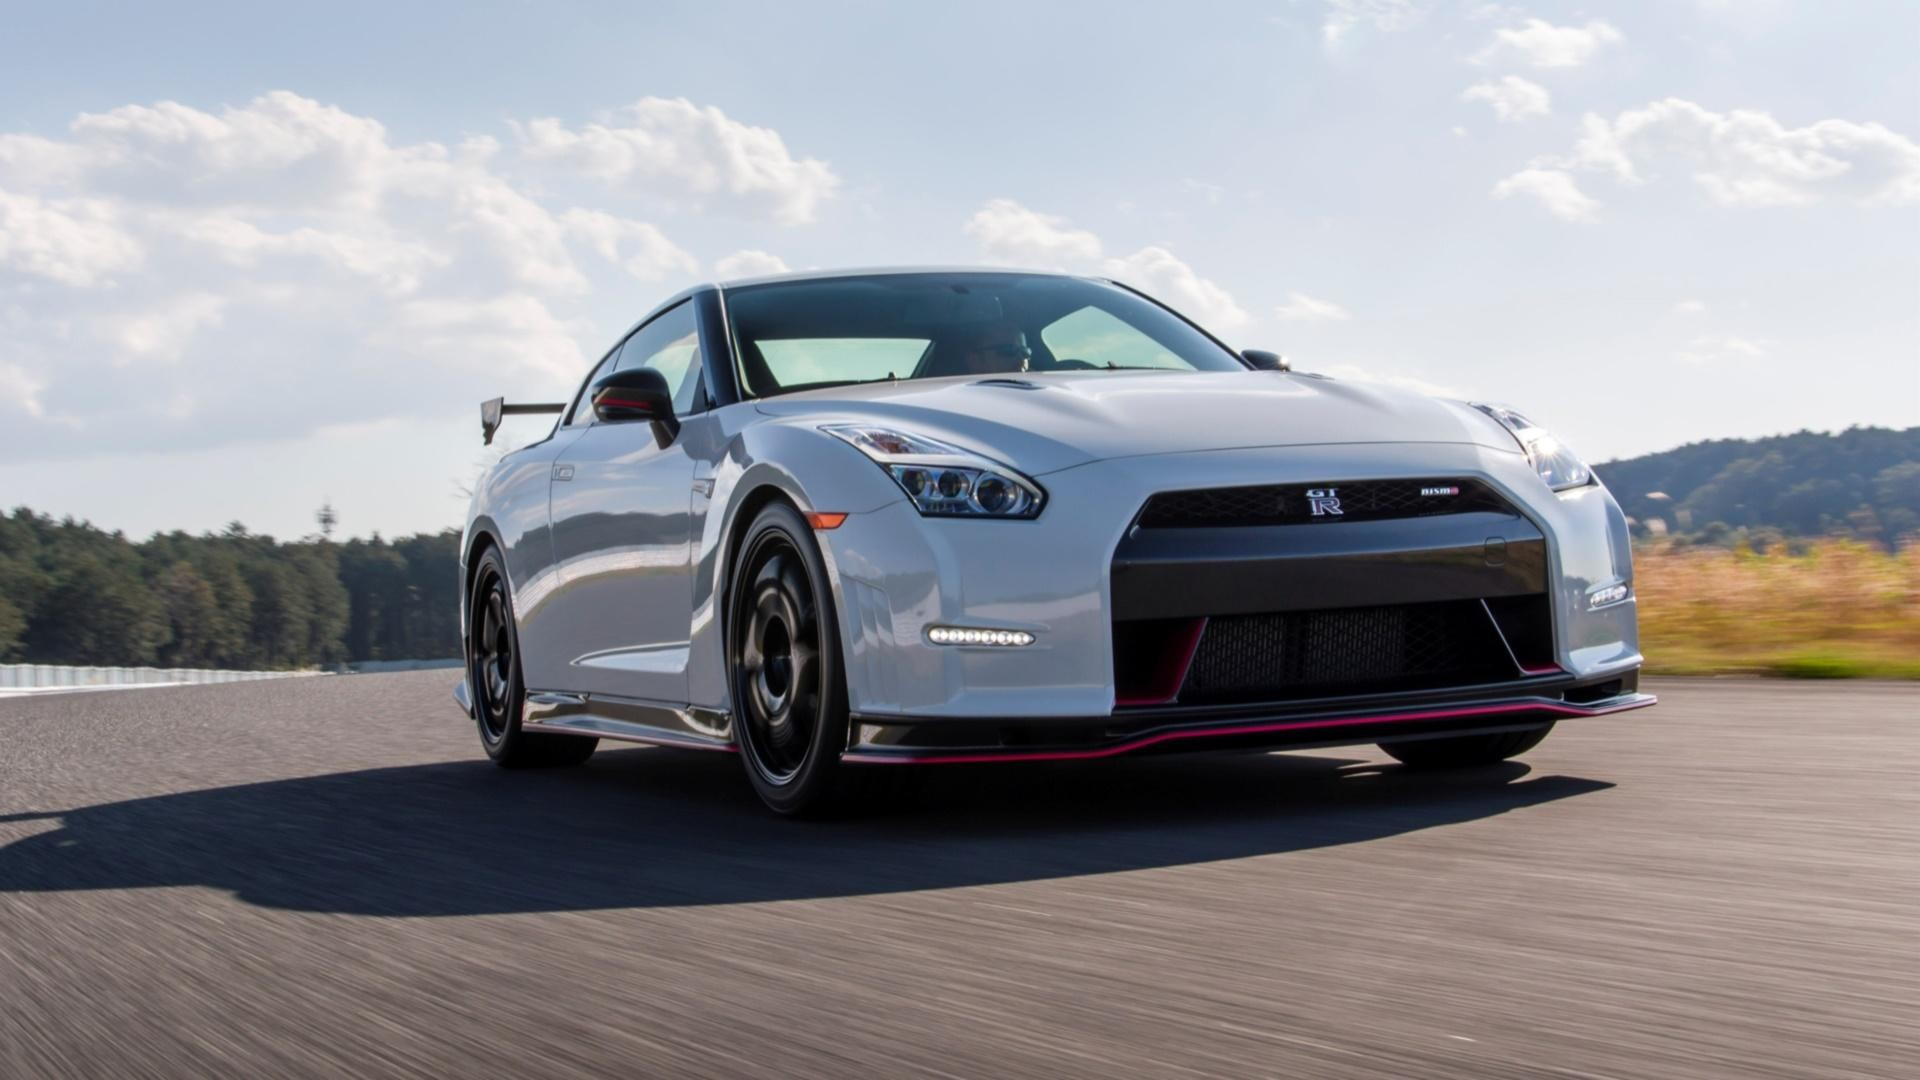 Res: 1920x1080, Nissan, Nismo, Nissan Skyline Gtr, Sportscar, Supercar HD Wallpaper, Cars  Picture, Background and Image